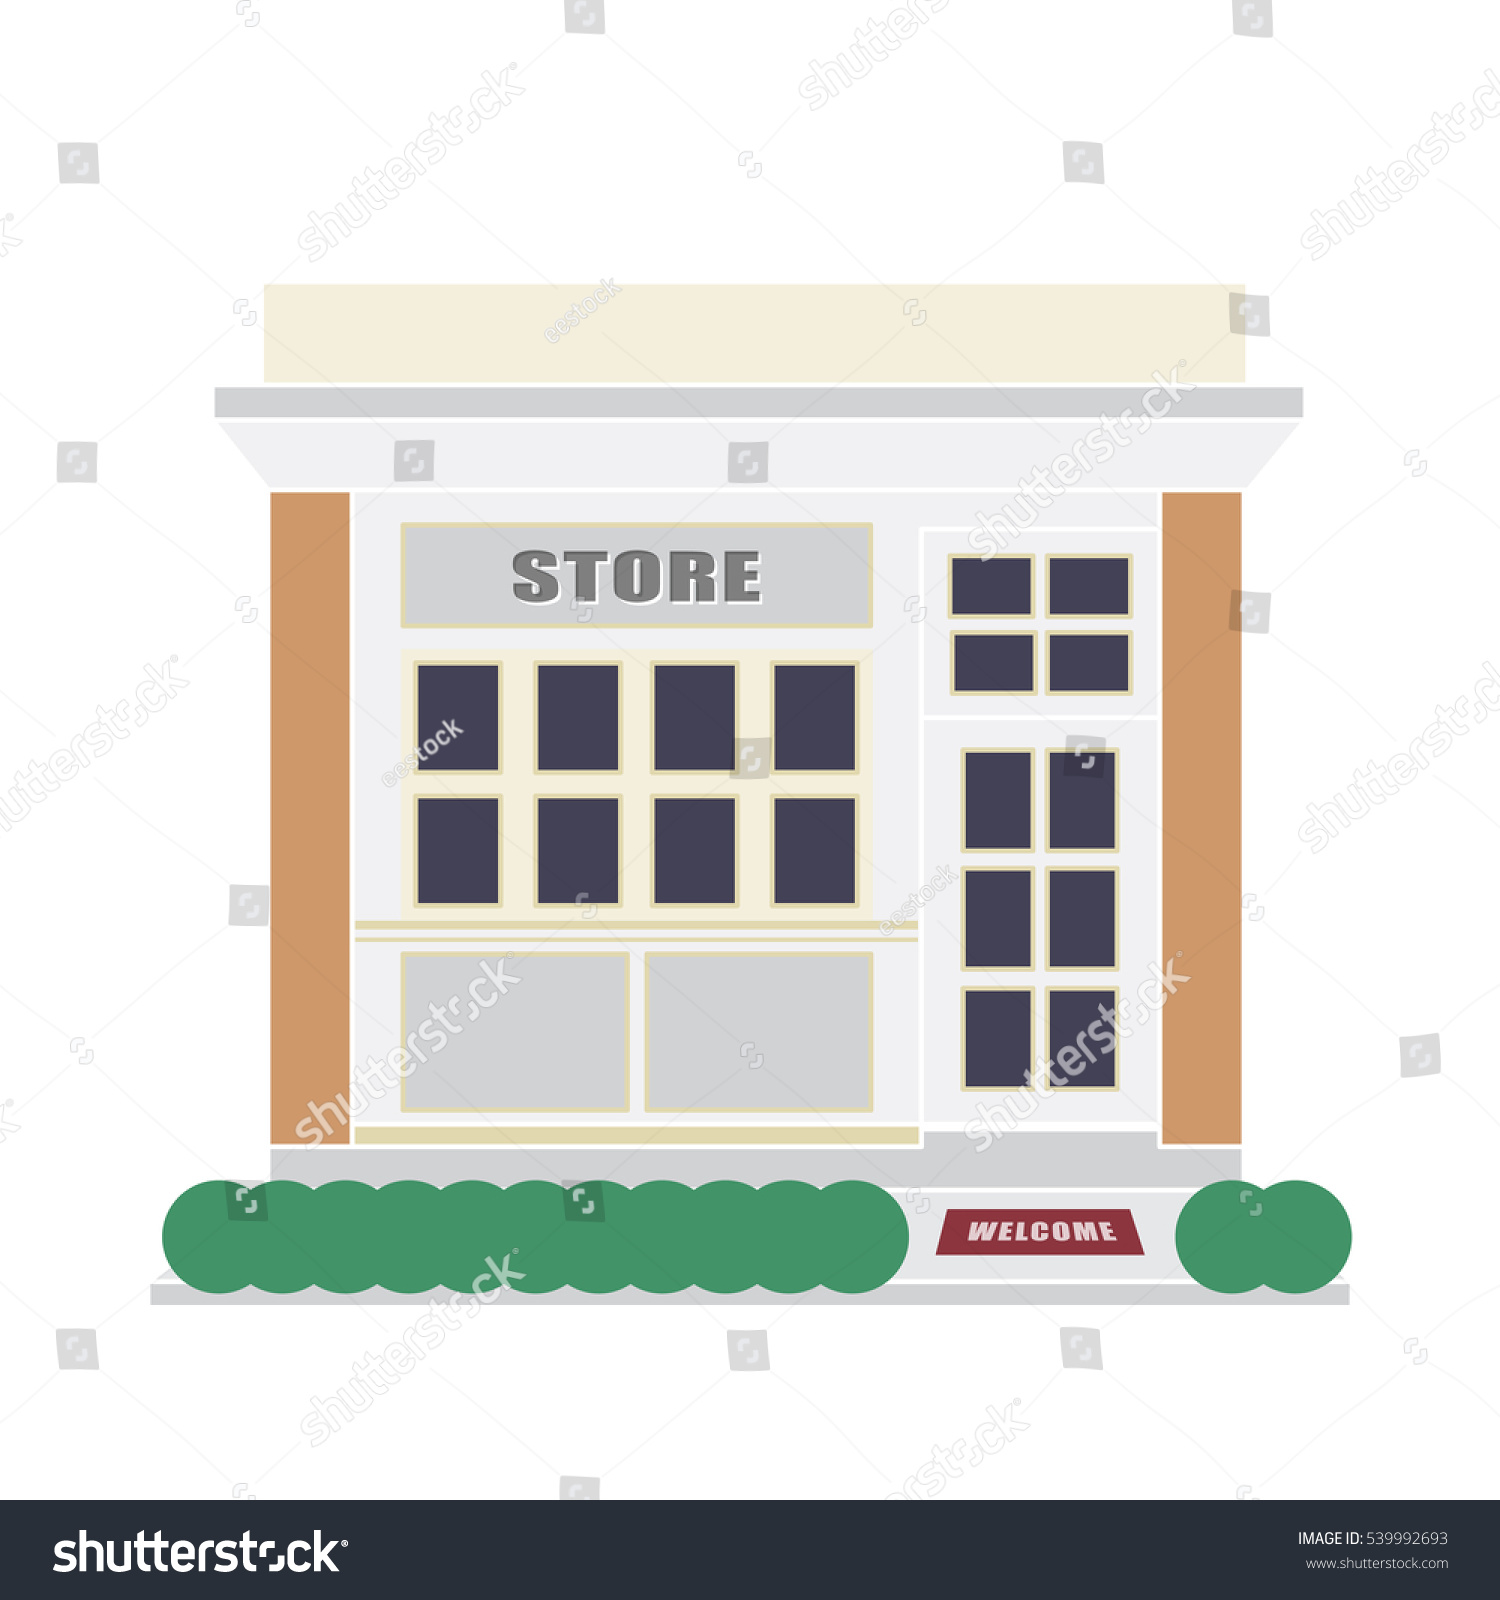 Front building store vector flat design stock vector for Store building design